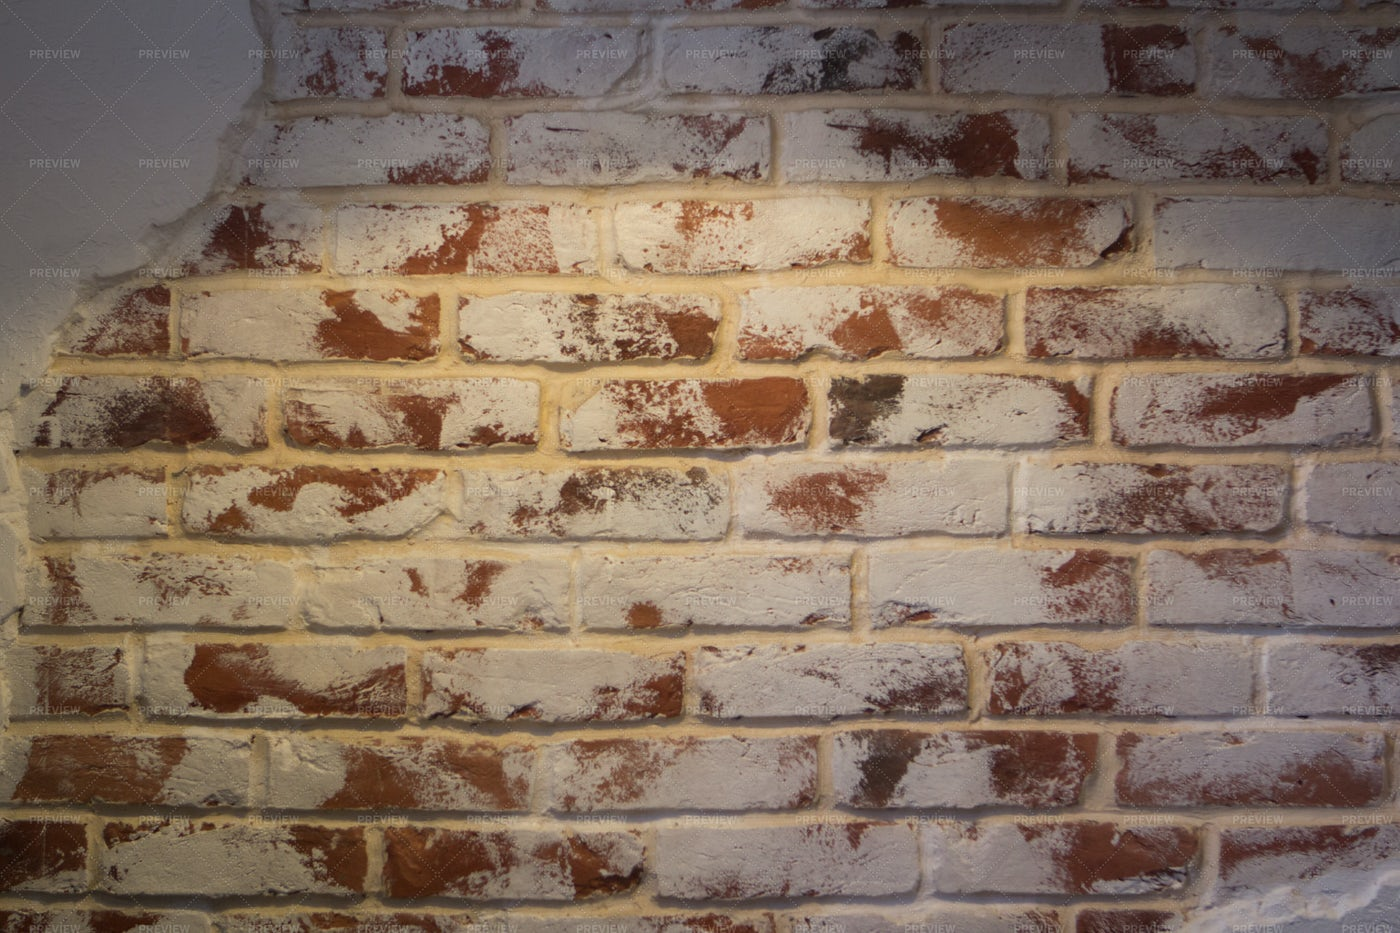 Old Red Brick Wall With White Paint: Stock Photos